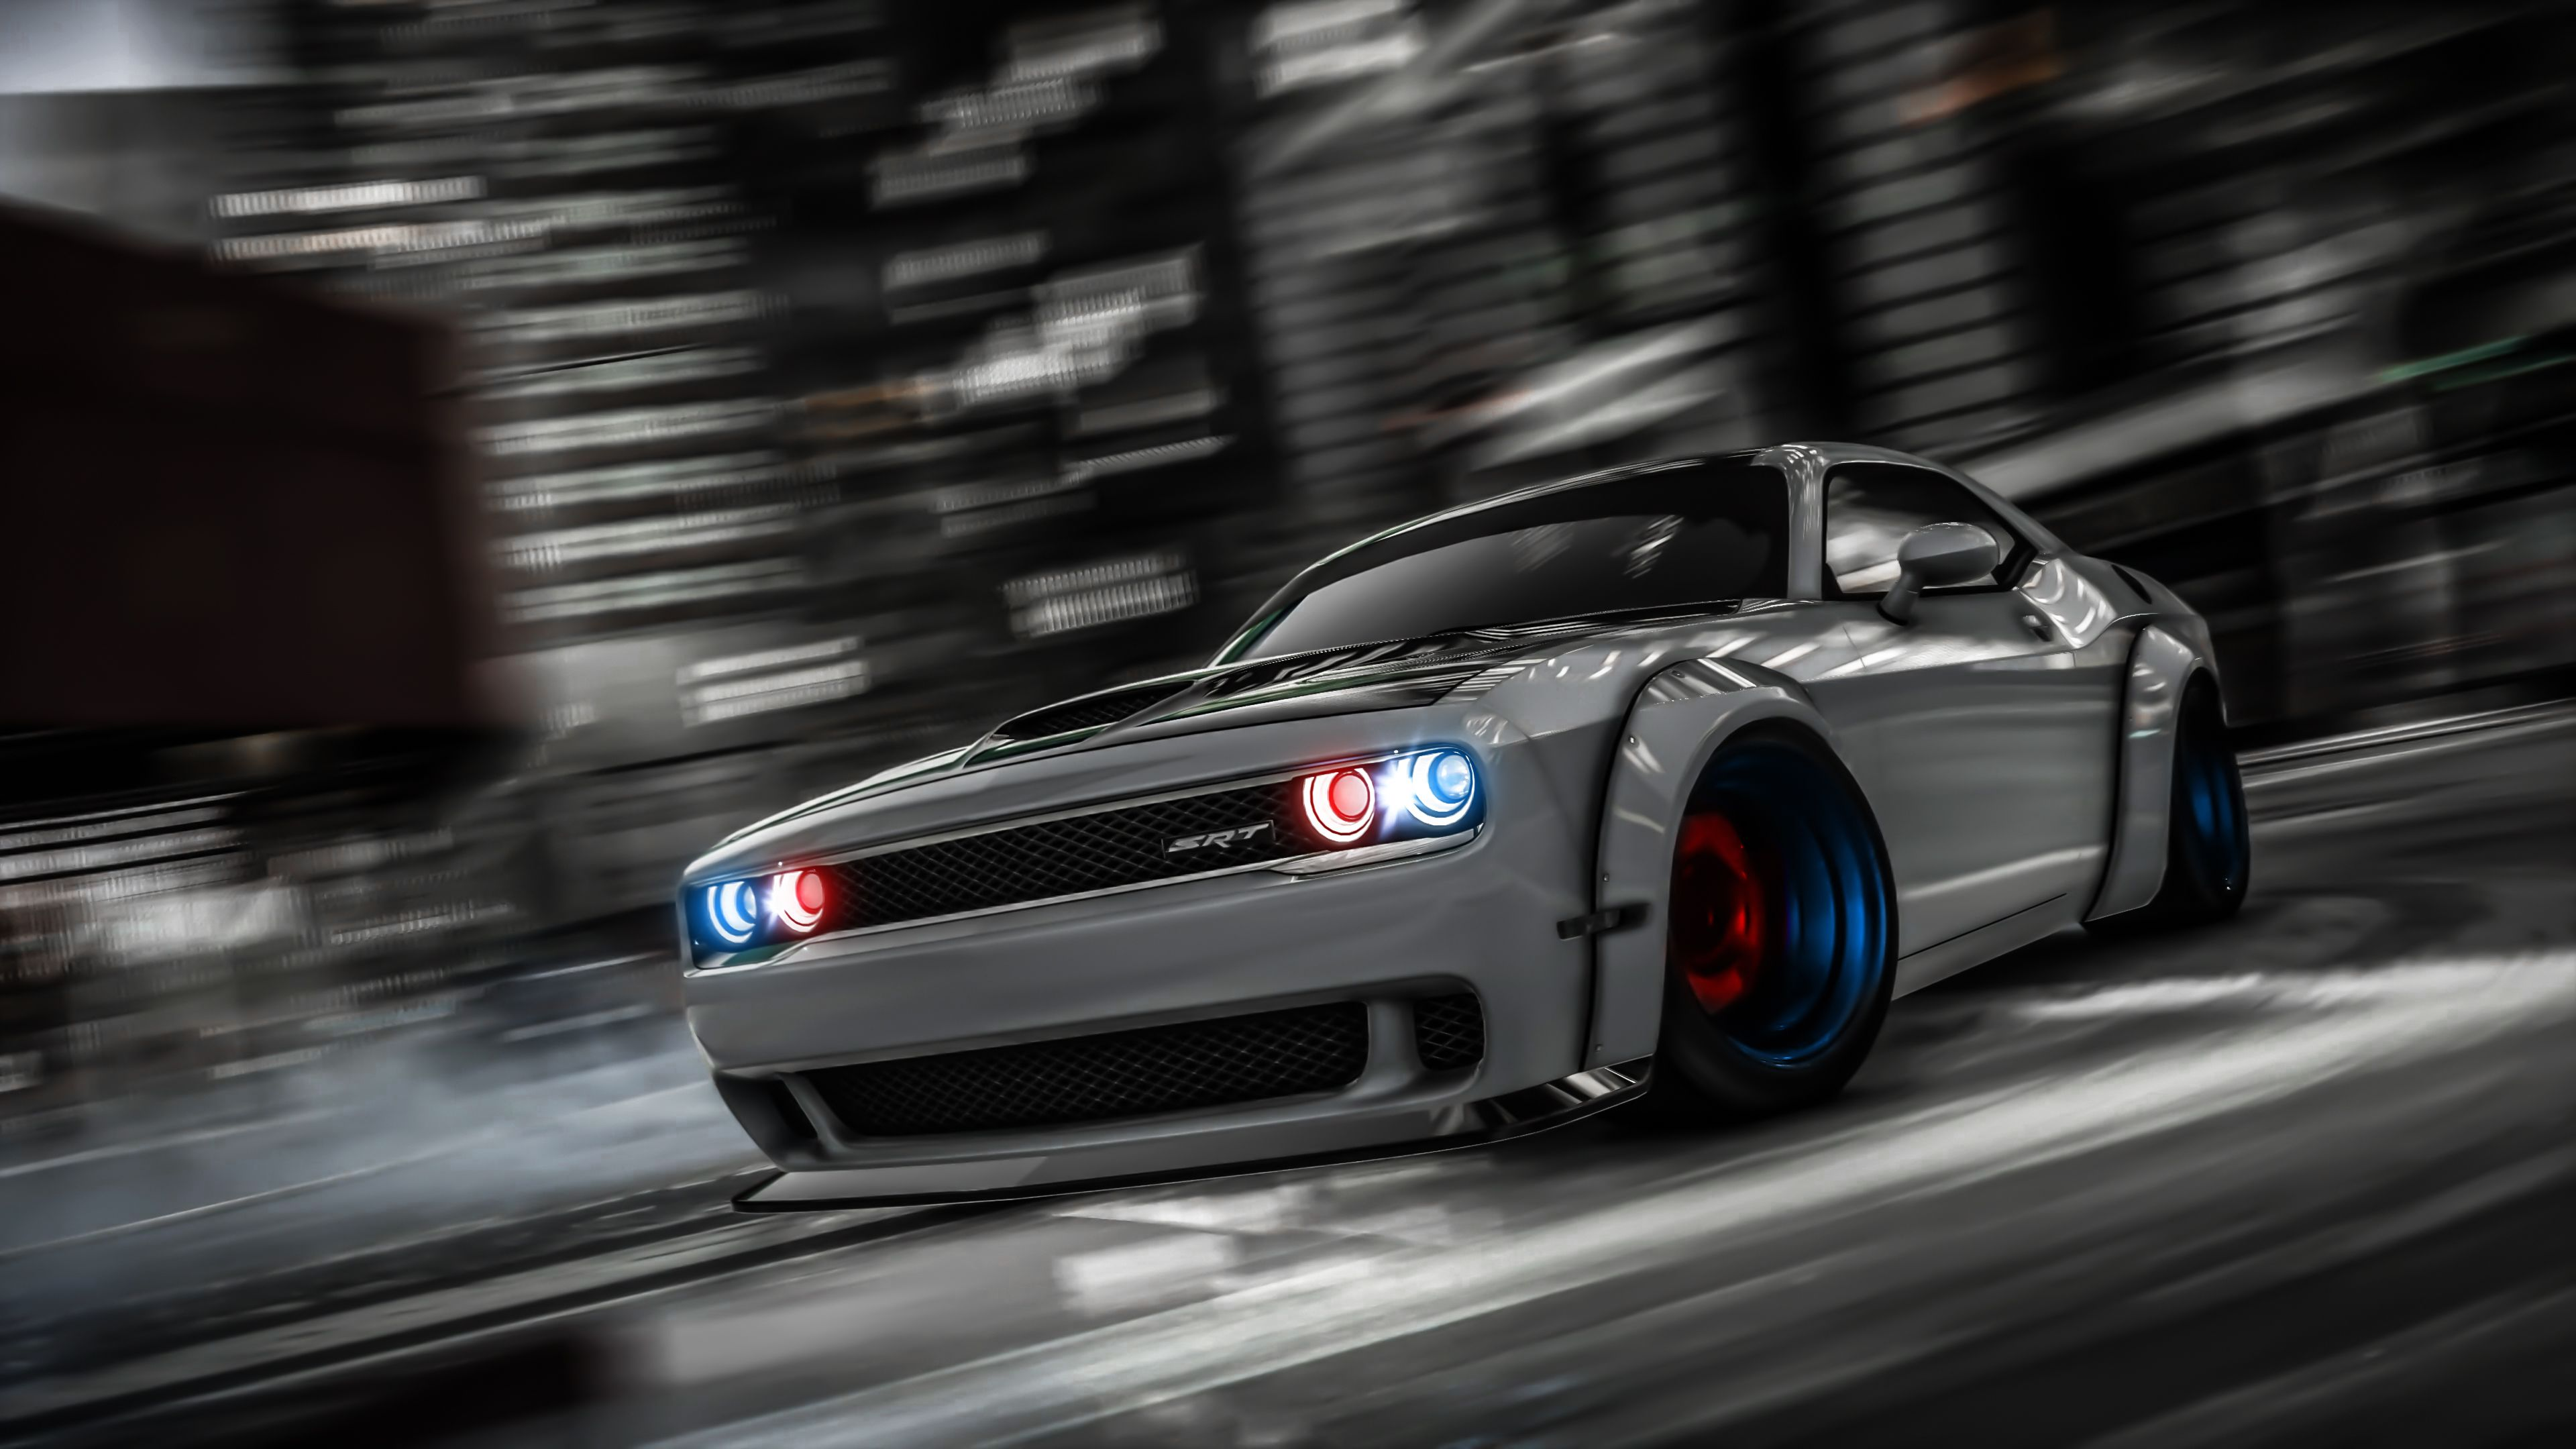 We try to bring you new posts about interesting or popular subjects containing new quality wallpapers every business day. Dodge Challenger Drifting Gta V Hd Wallpapers Gta V Wallpapers Gta 5 Wallpapers Dodge Wallpapers Dodge Challenge Dodge Challenger Car Wallpapers Challenger